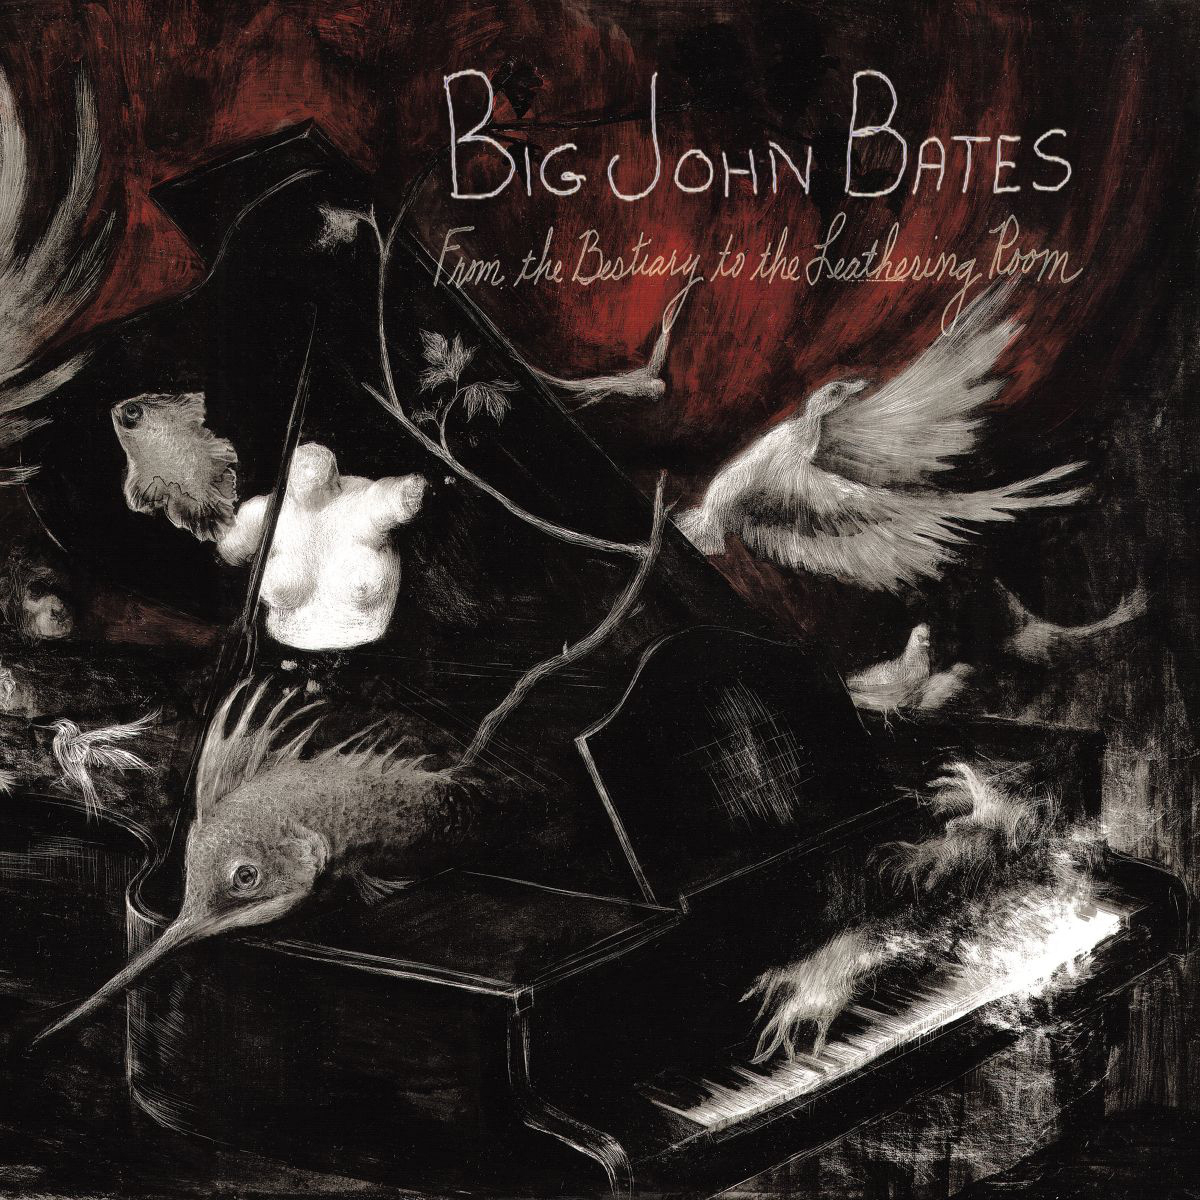 Big John Bates: From The Bestiary To The Leathering Room (2015)